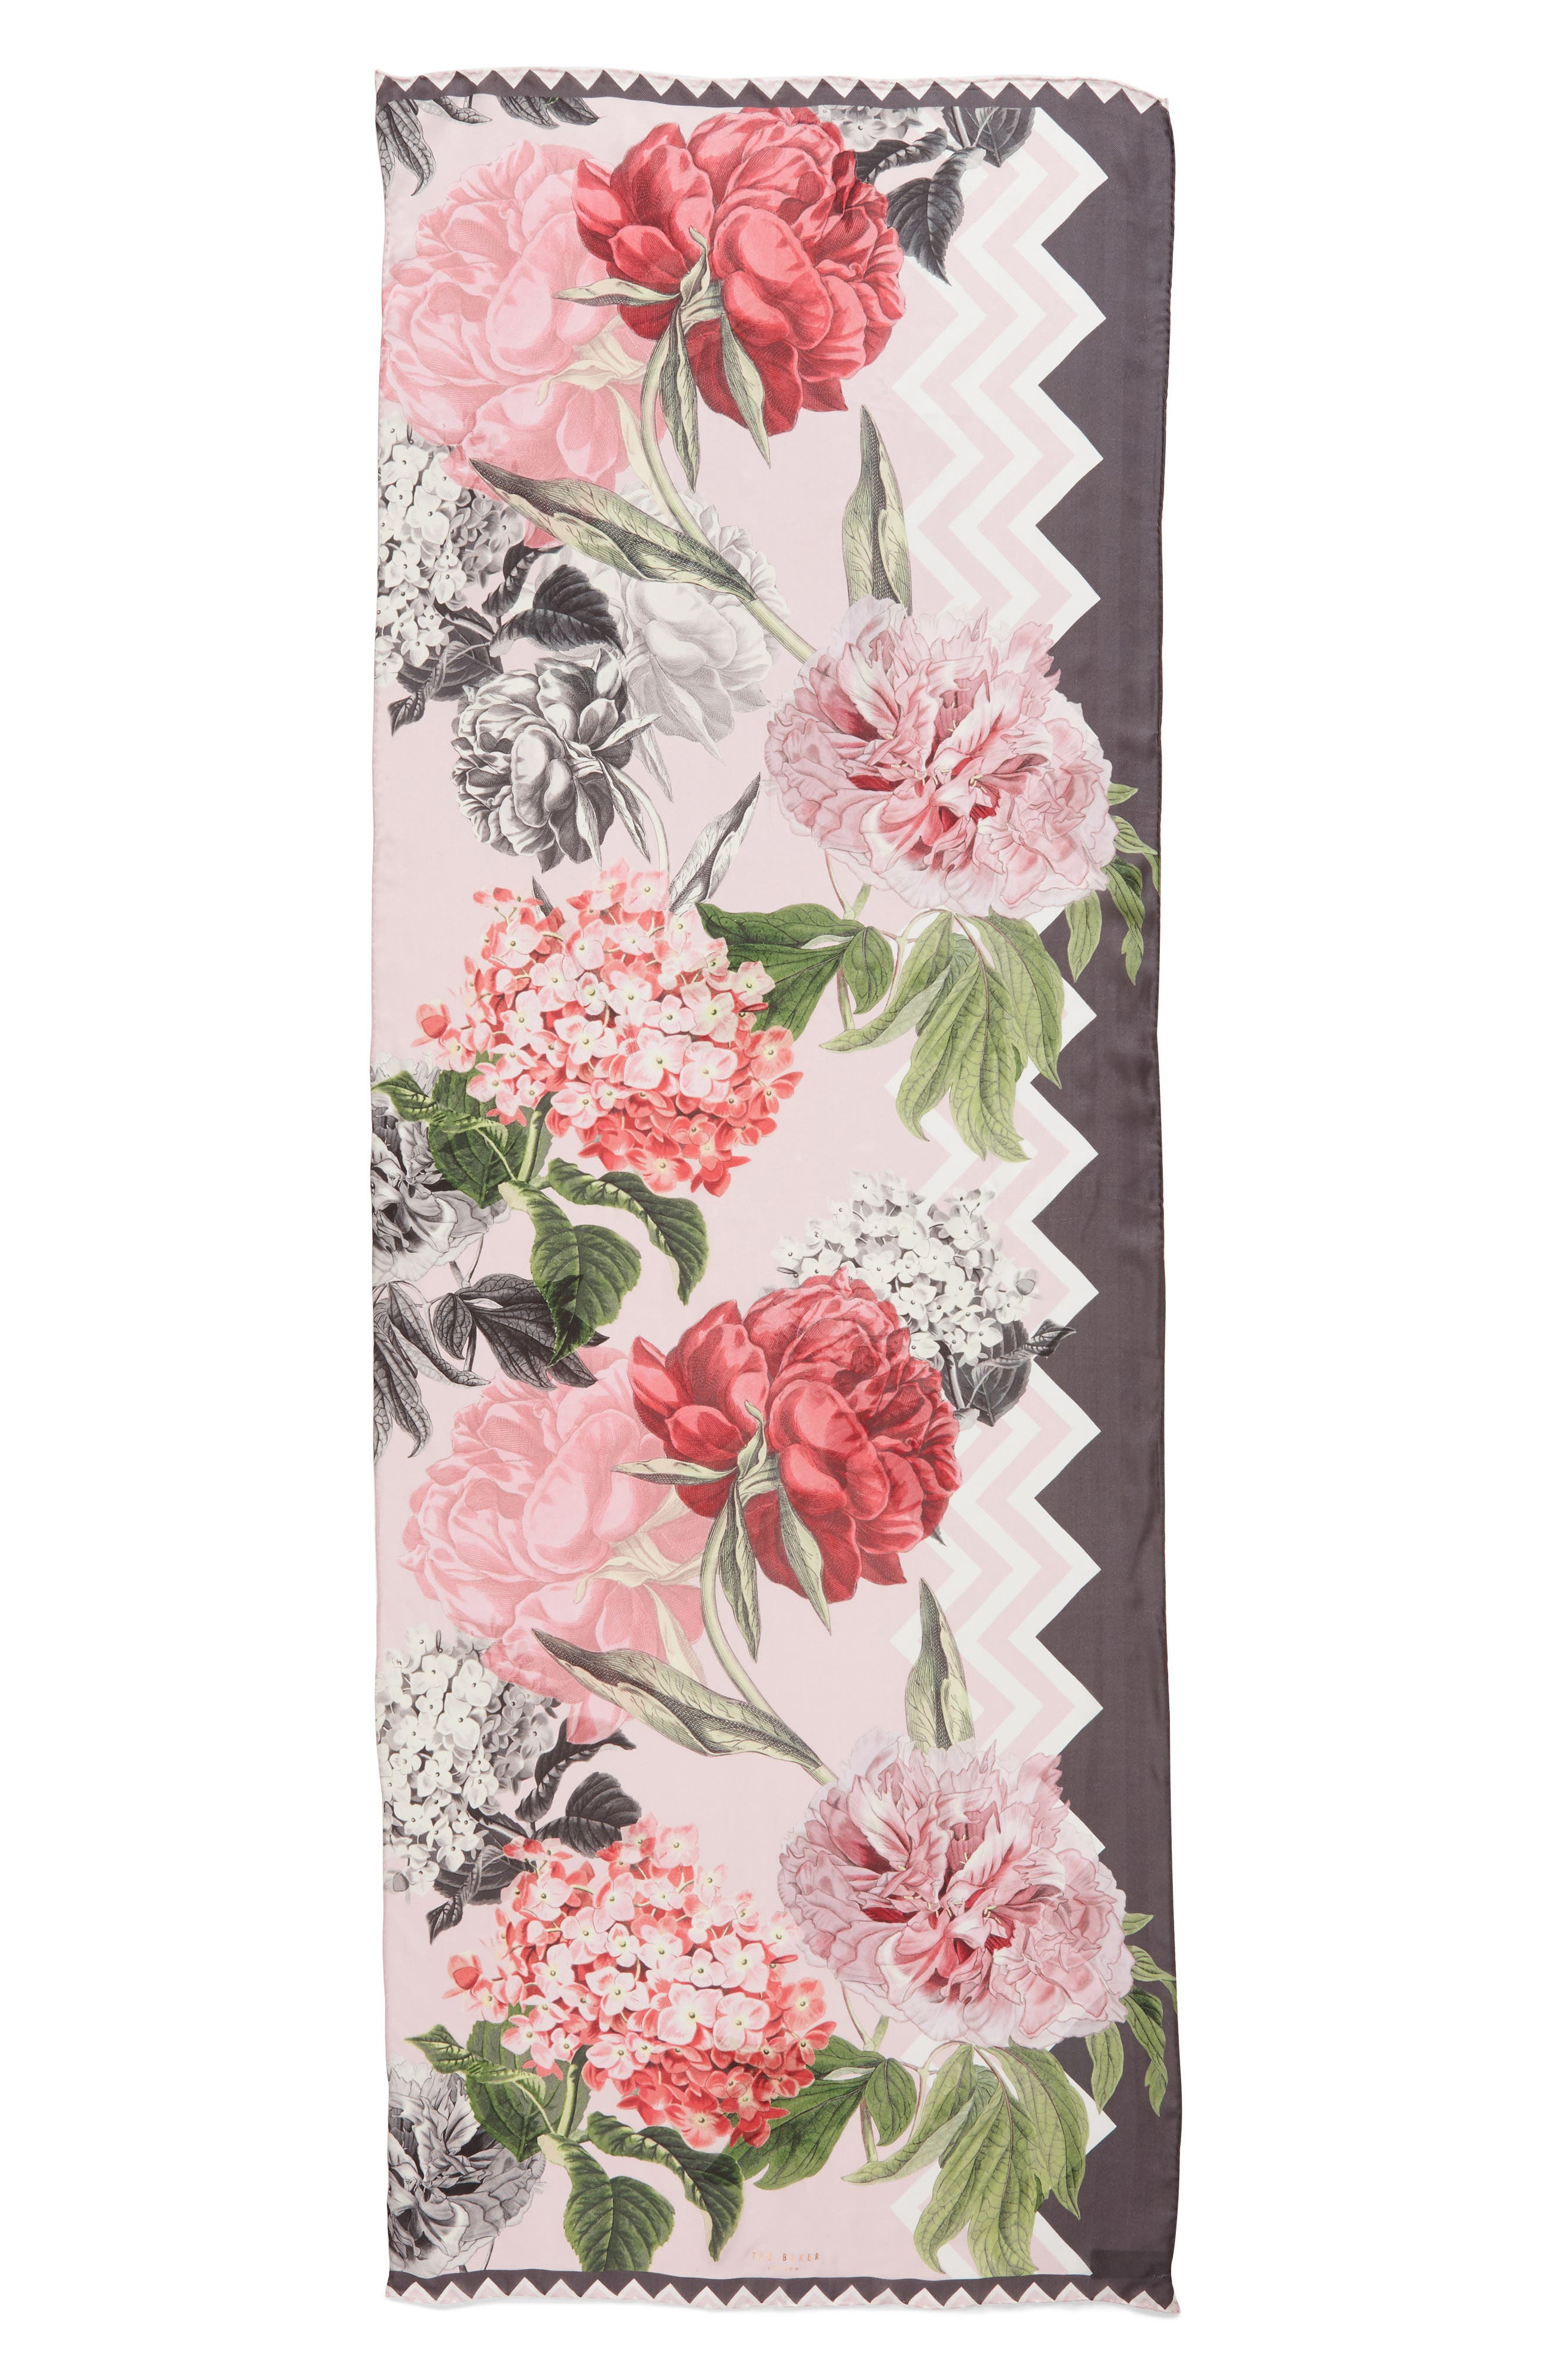 Palace Gardens Silk Scarf,                             Alternate thumbnail 3, color,                             DUSKY PINK